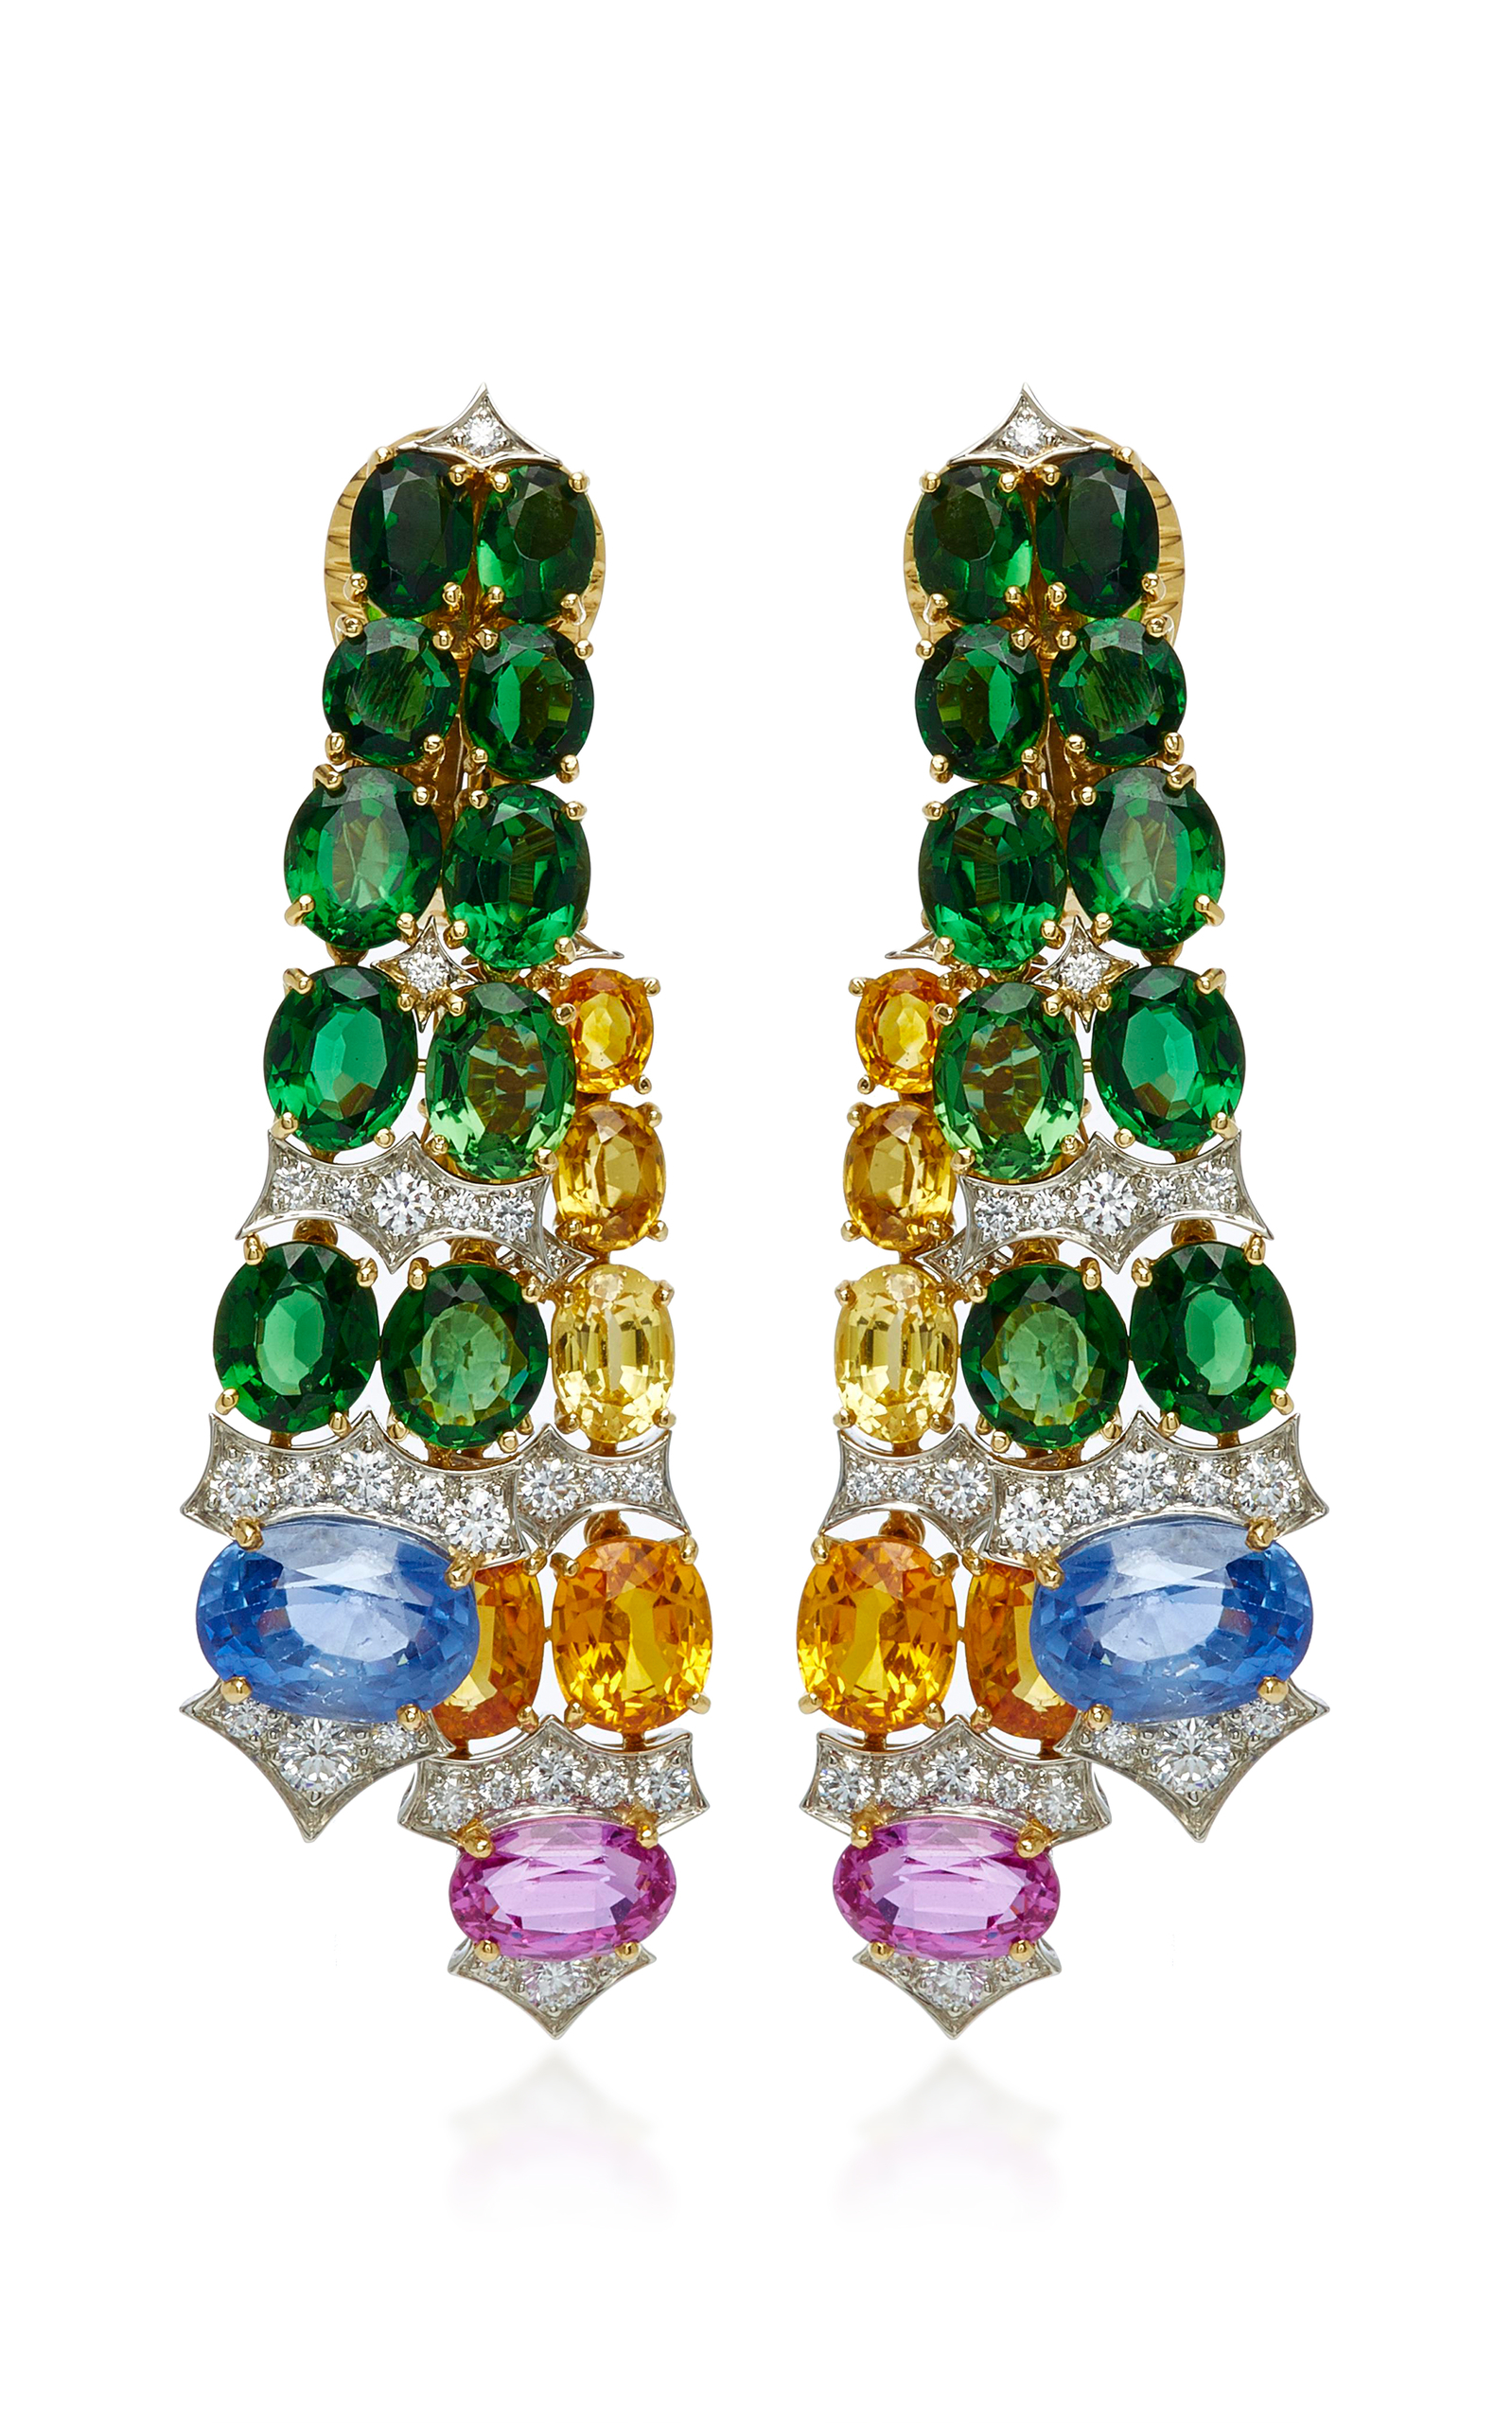 david diamond earrings jewels eco webb christie online christies s